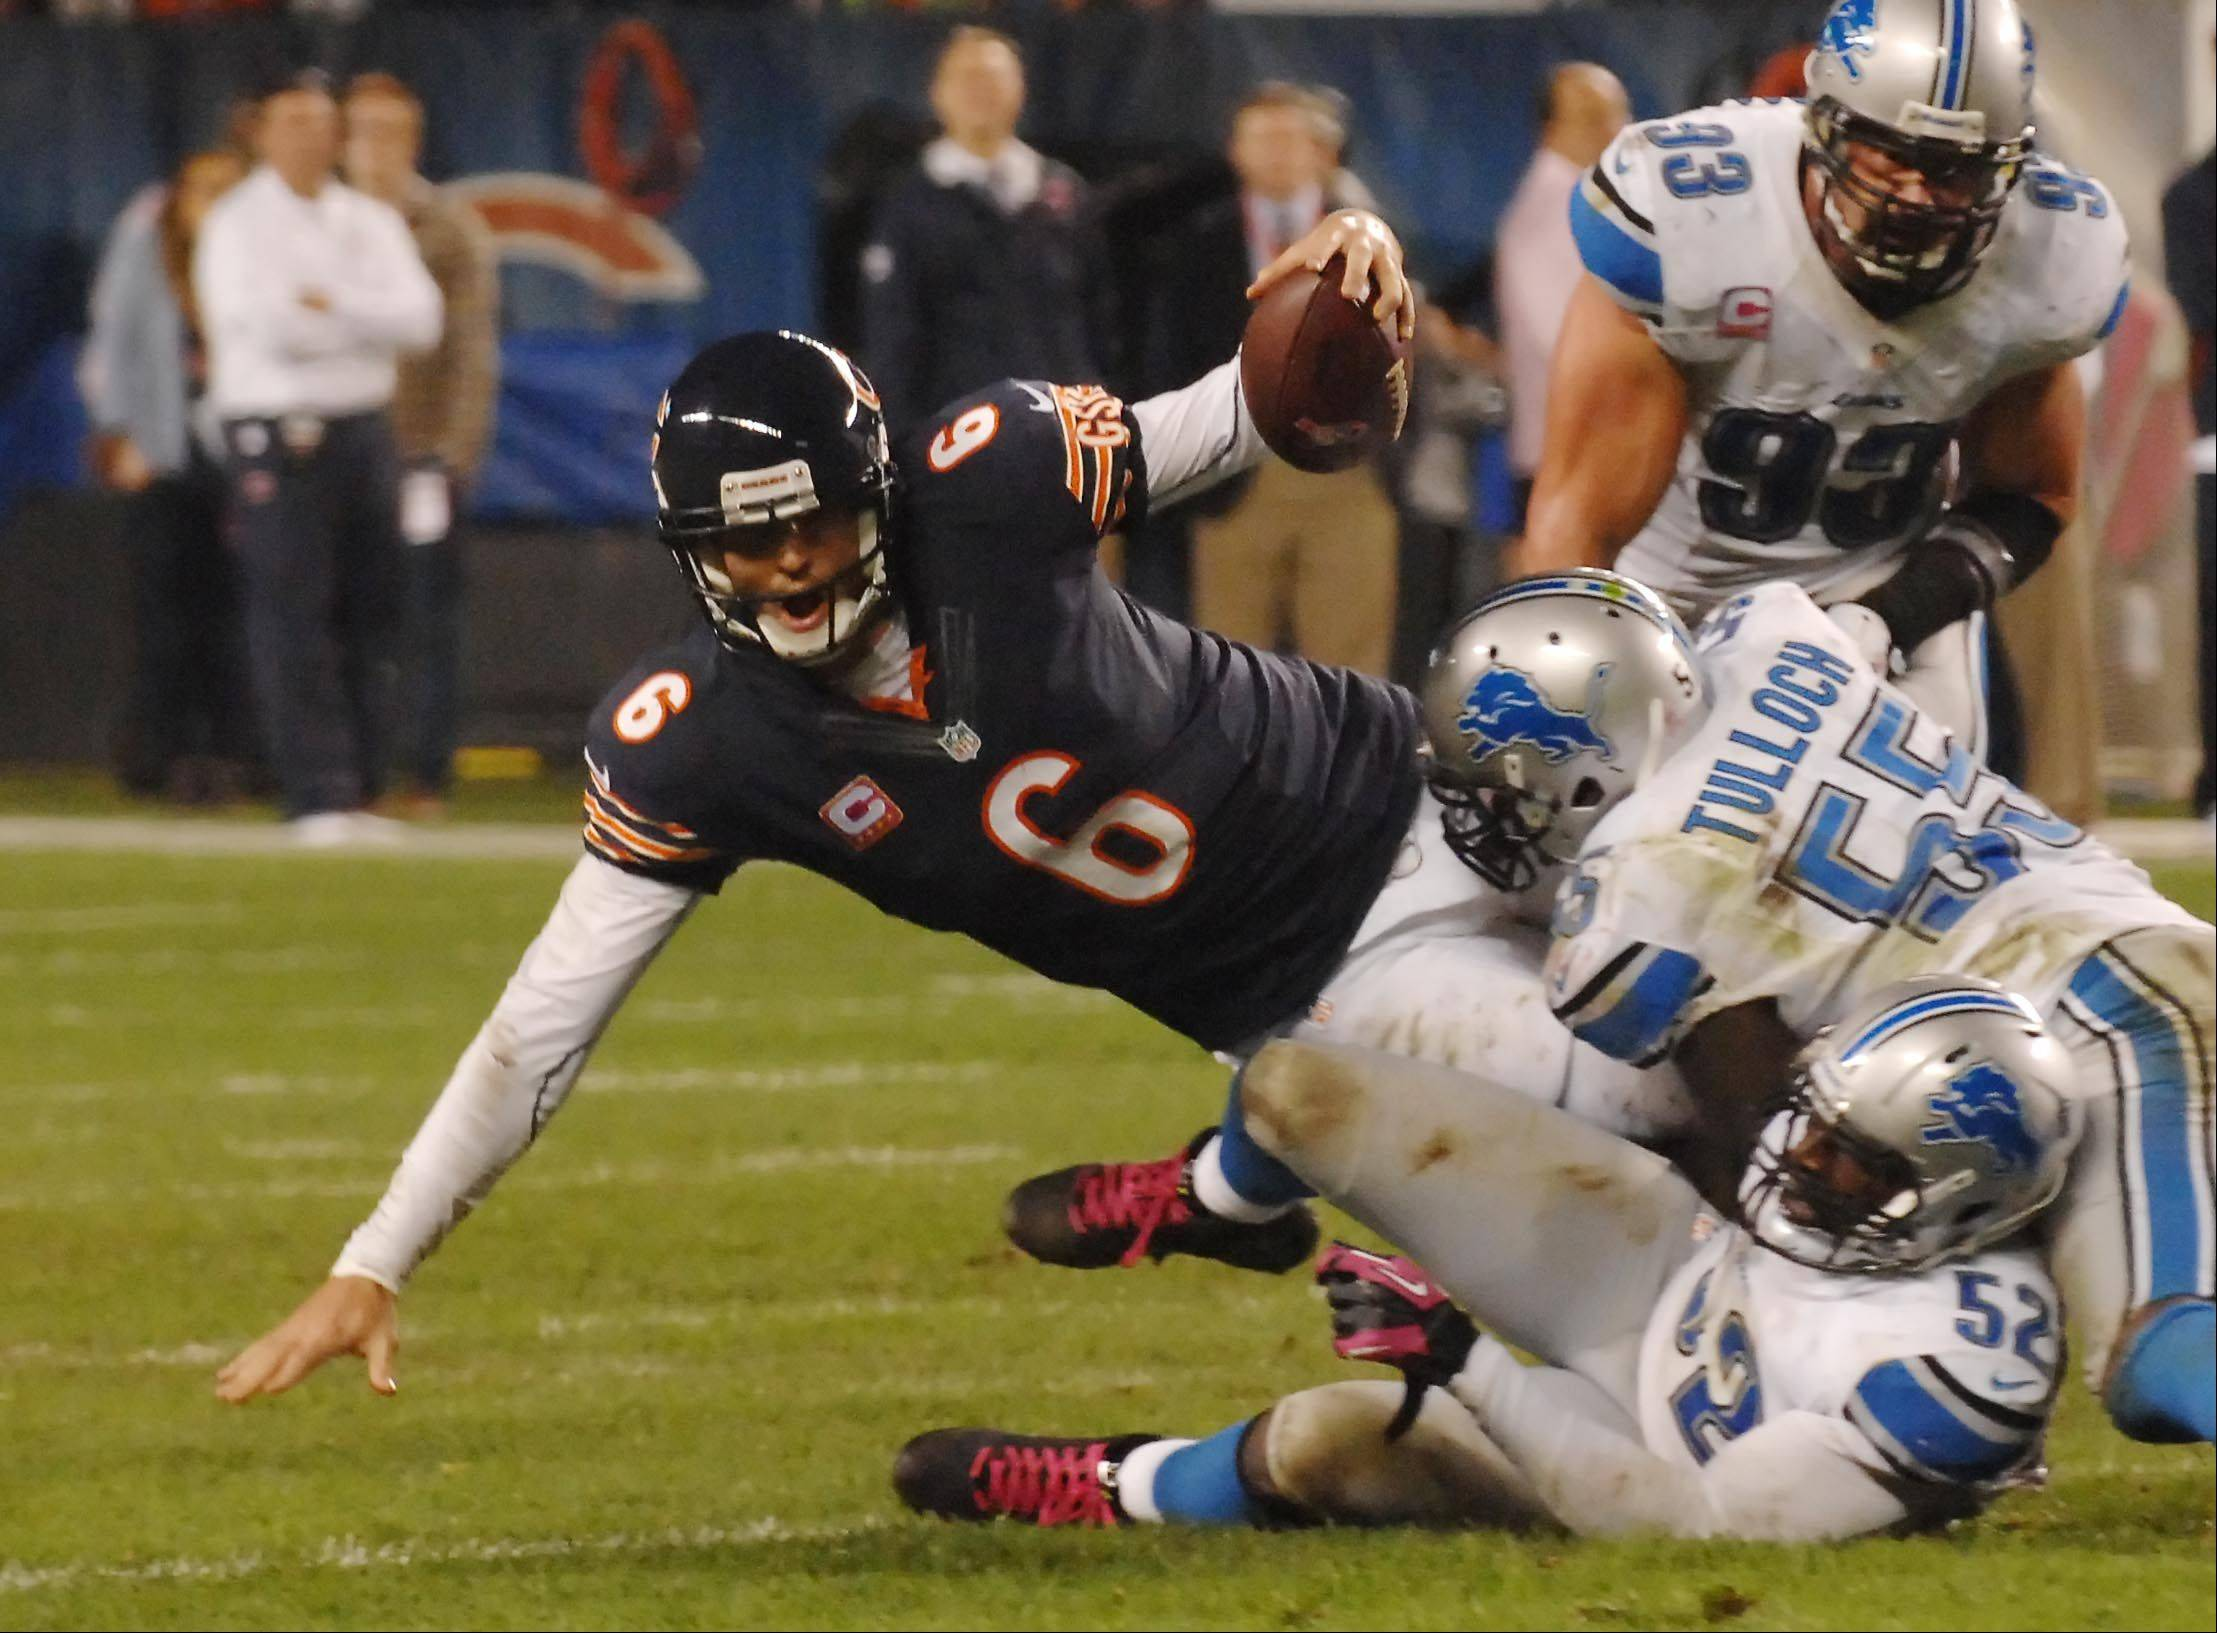 Detroit Lions middle linebacker Stephen Tulloch and outside linebacker Justin Durant sack Chicago Bears quarterback Jay Cutler in the second quarter.